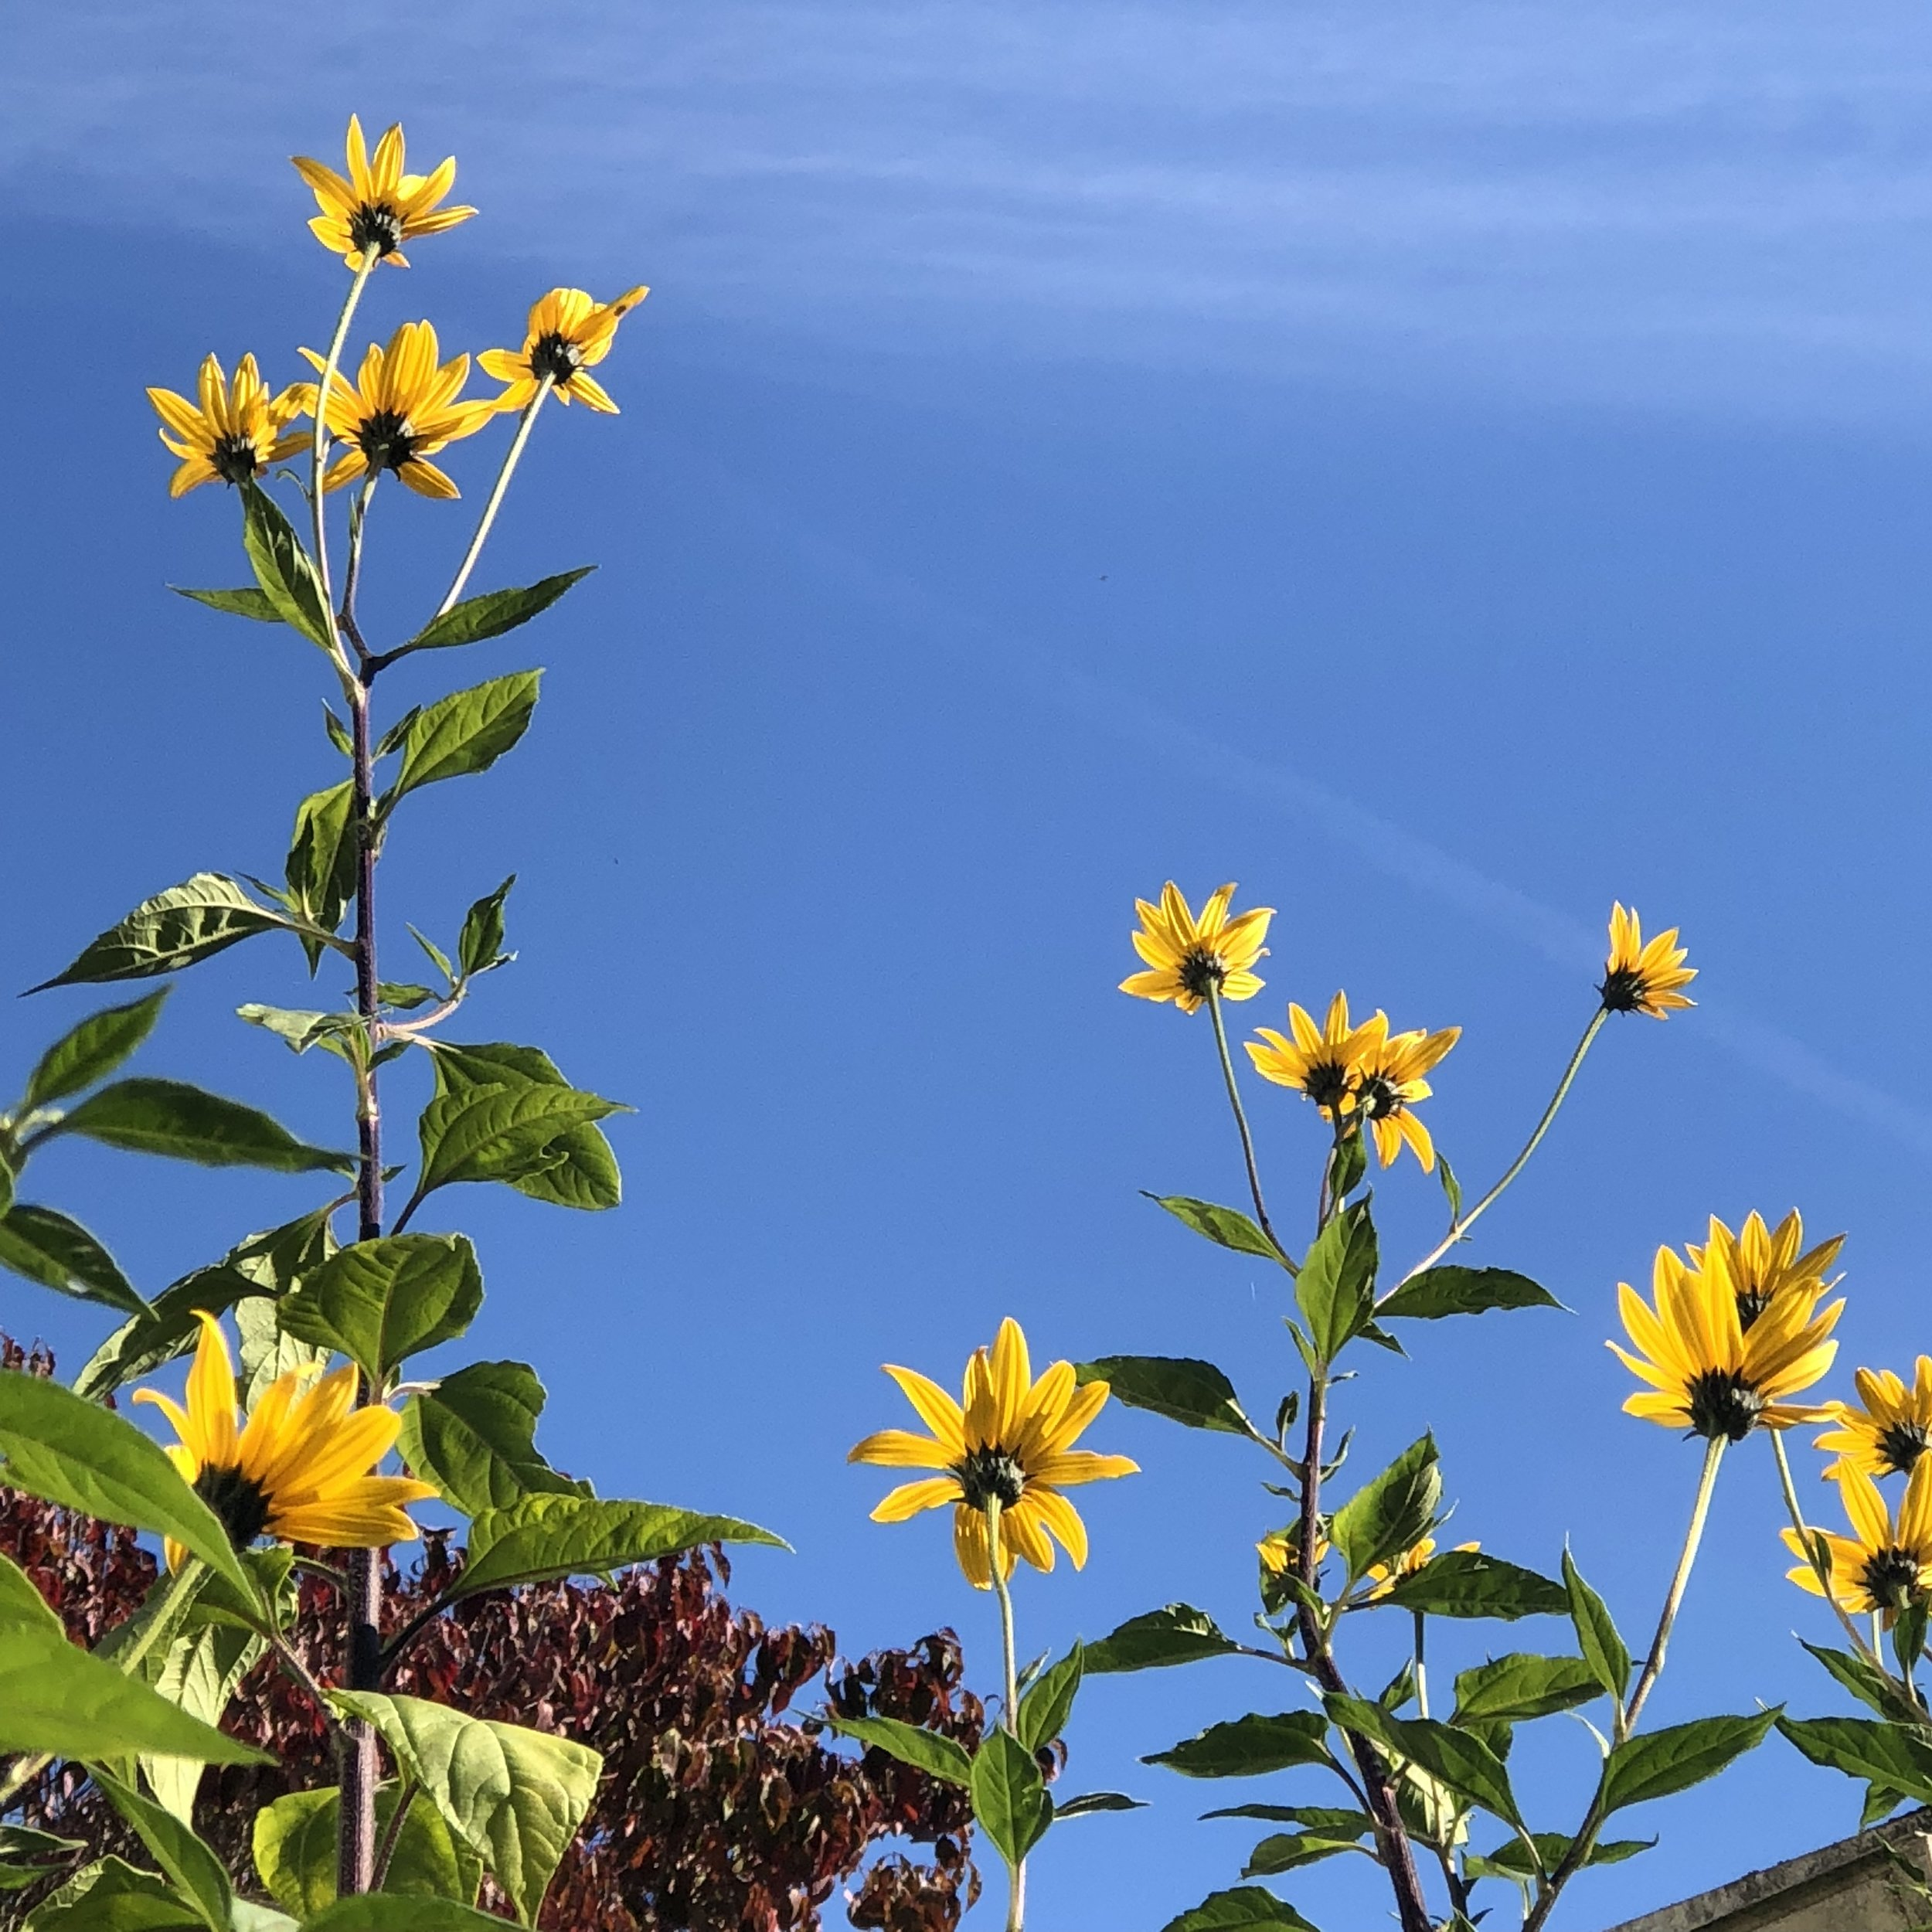 Bright yellow flowers in front of a blue sky.